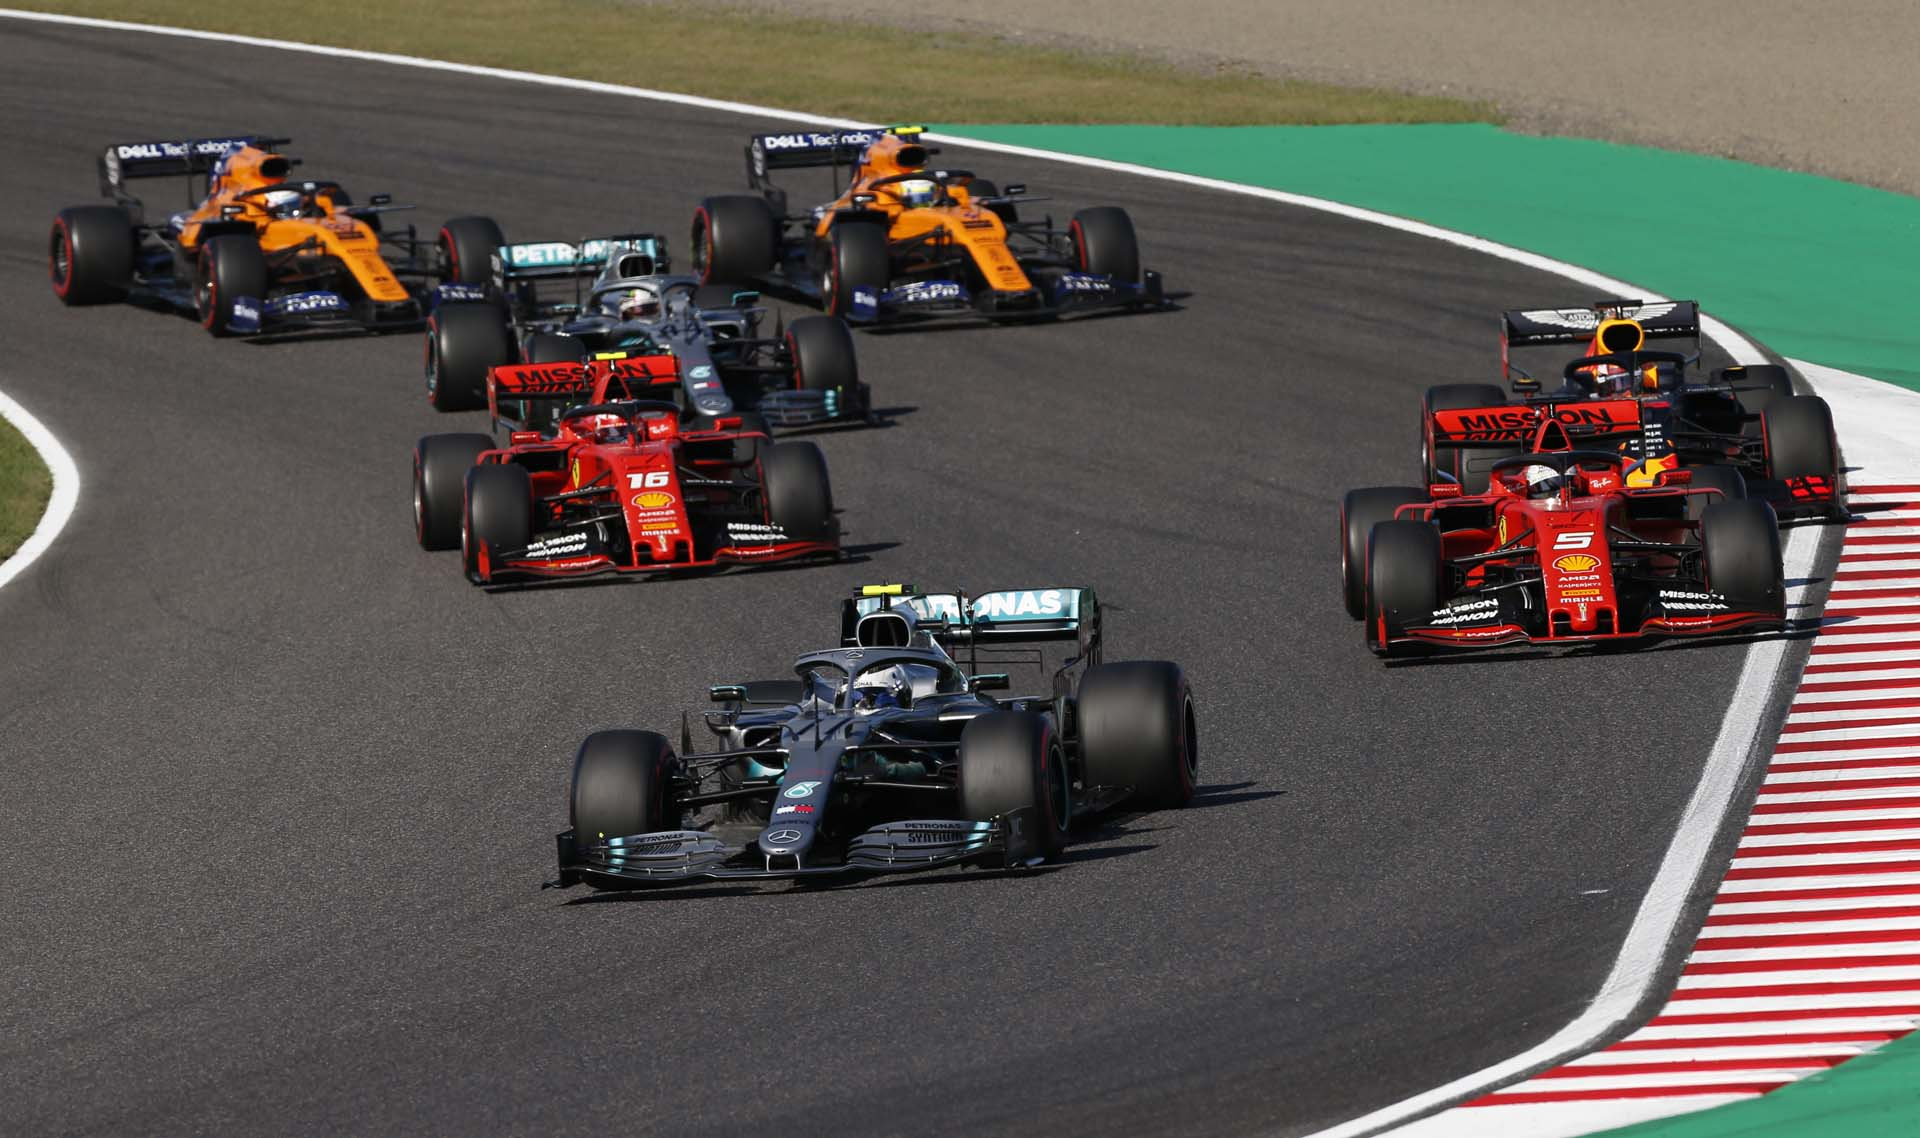 2019 Japanese Grand Prix, Sunday - Wolfgang Wilhelm